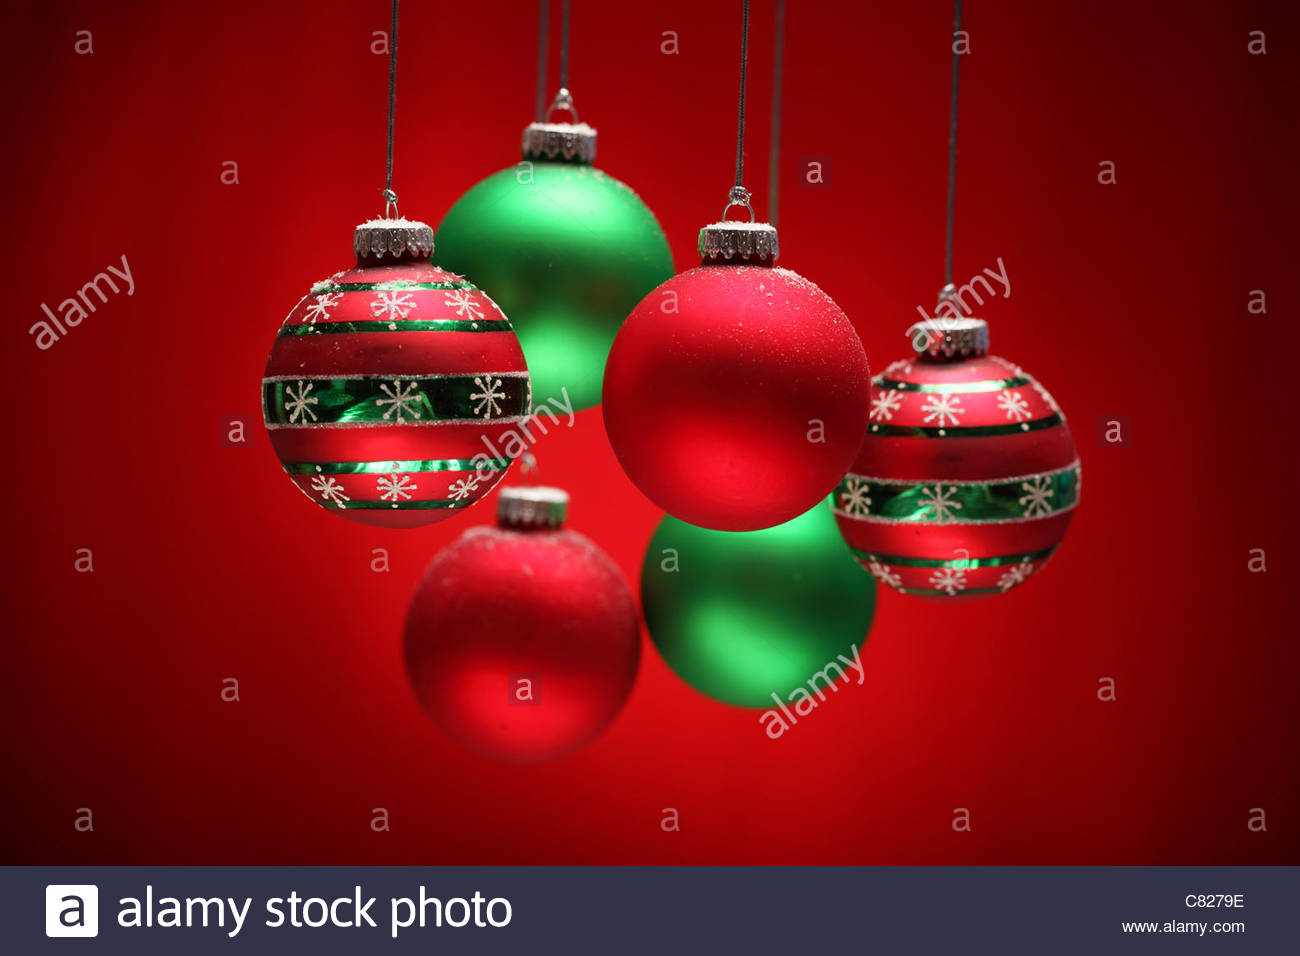 Free Download Green Christmas Wallpaper Background Stock Photos